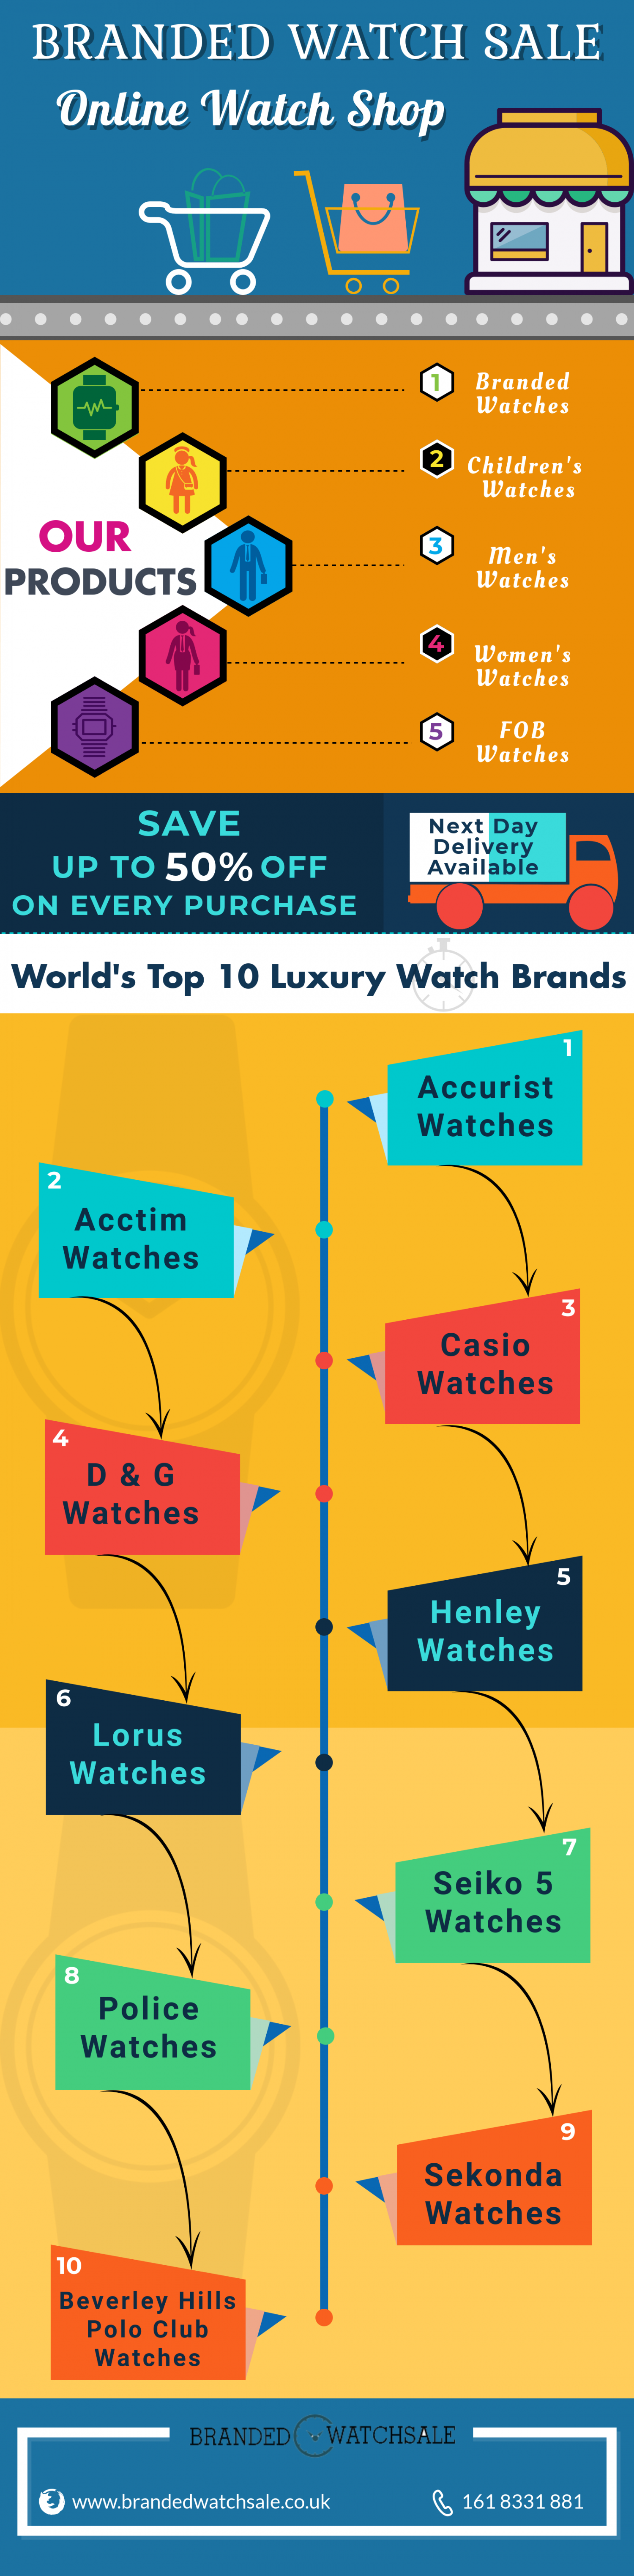 World's Top 10 Luxury Watch Brands – Branded Watch Sale Infographic